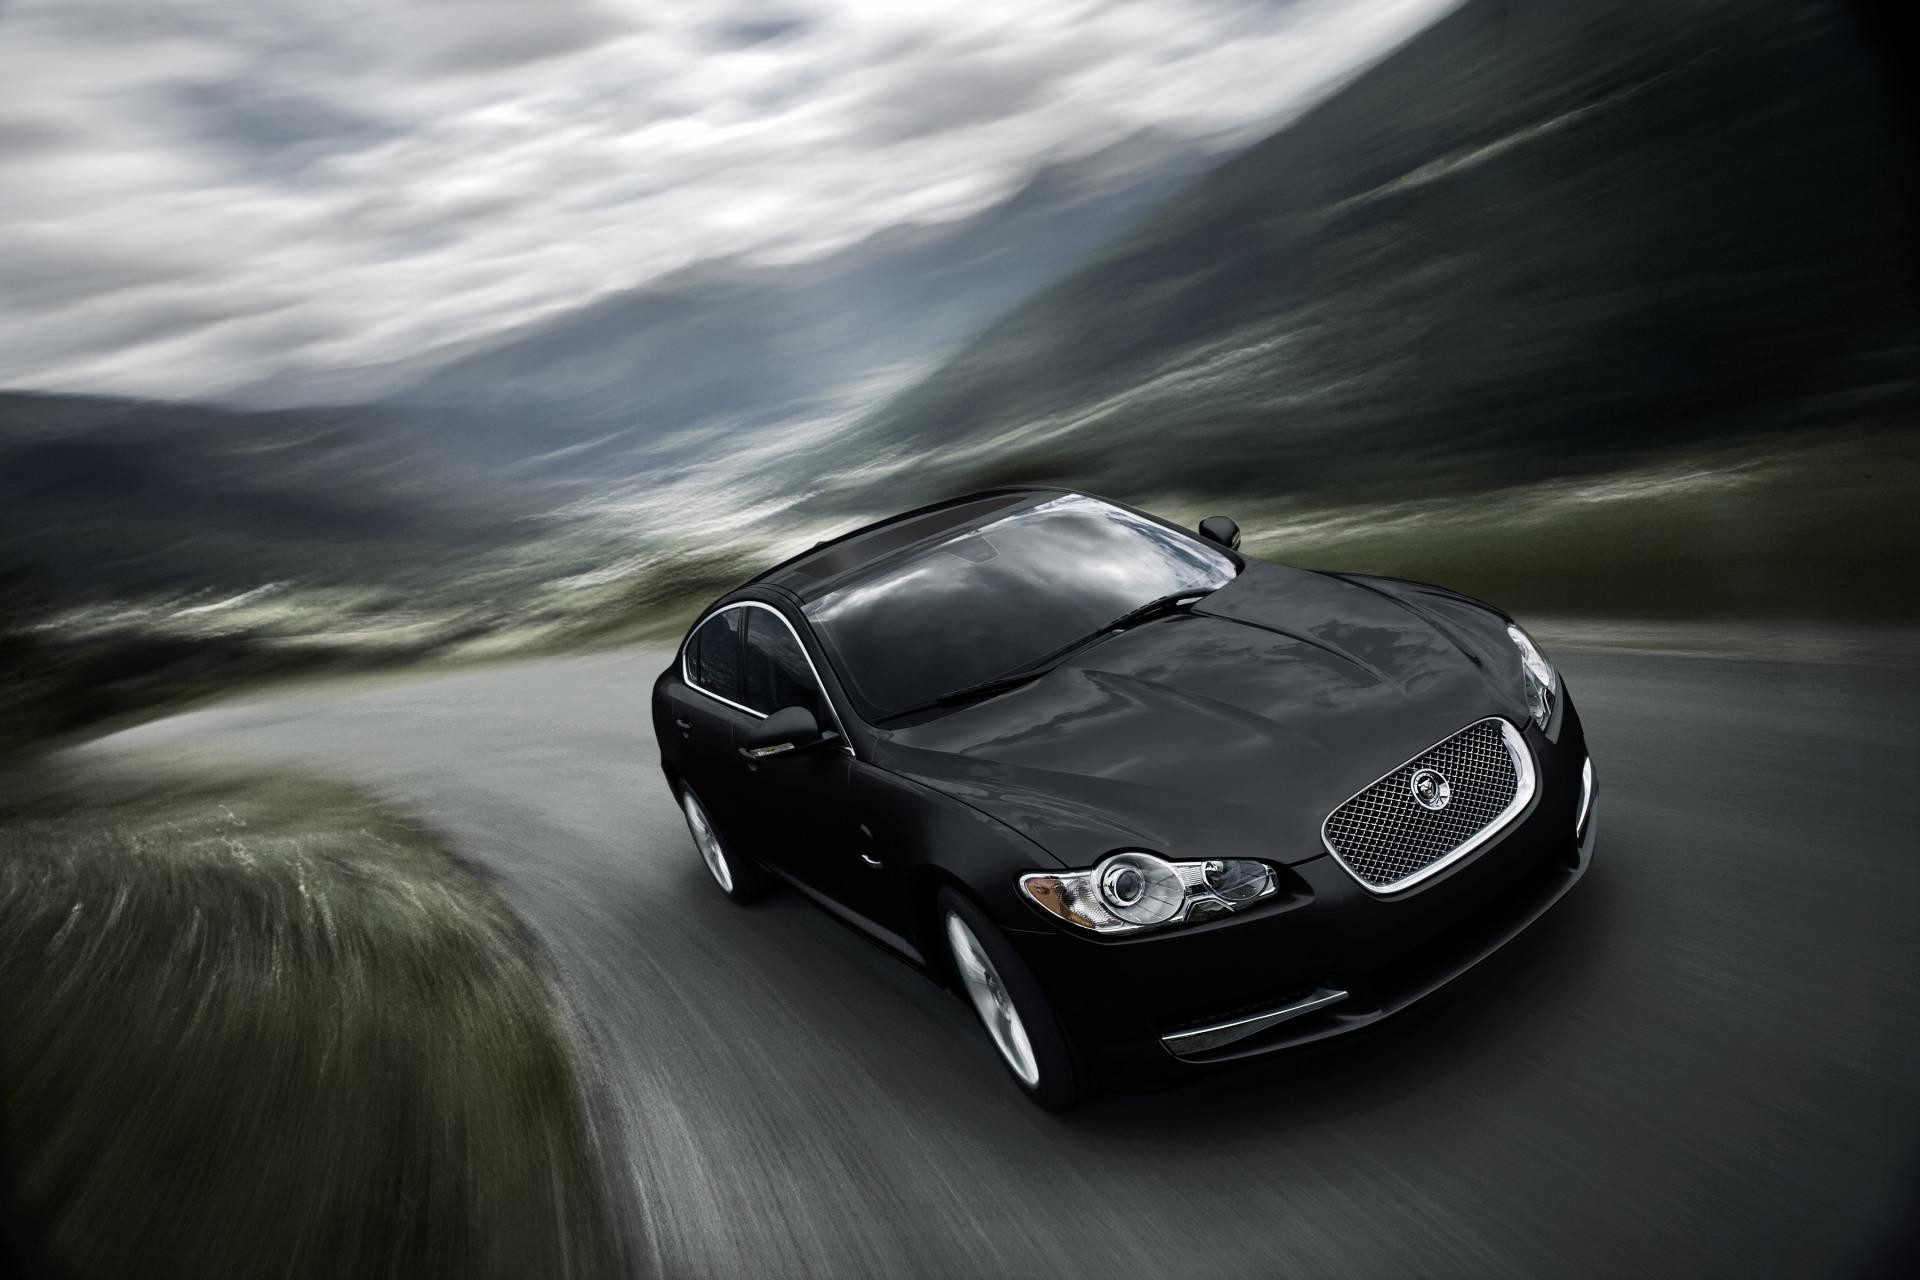 1920x1280 Jaguar Xf Wallpapers (68 Wallpapers)